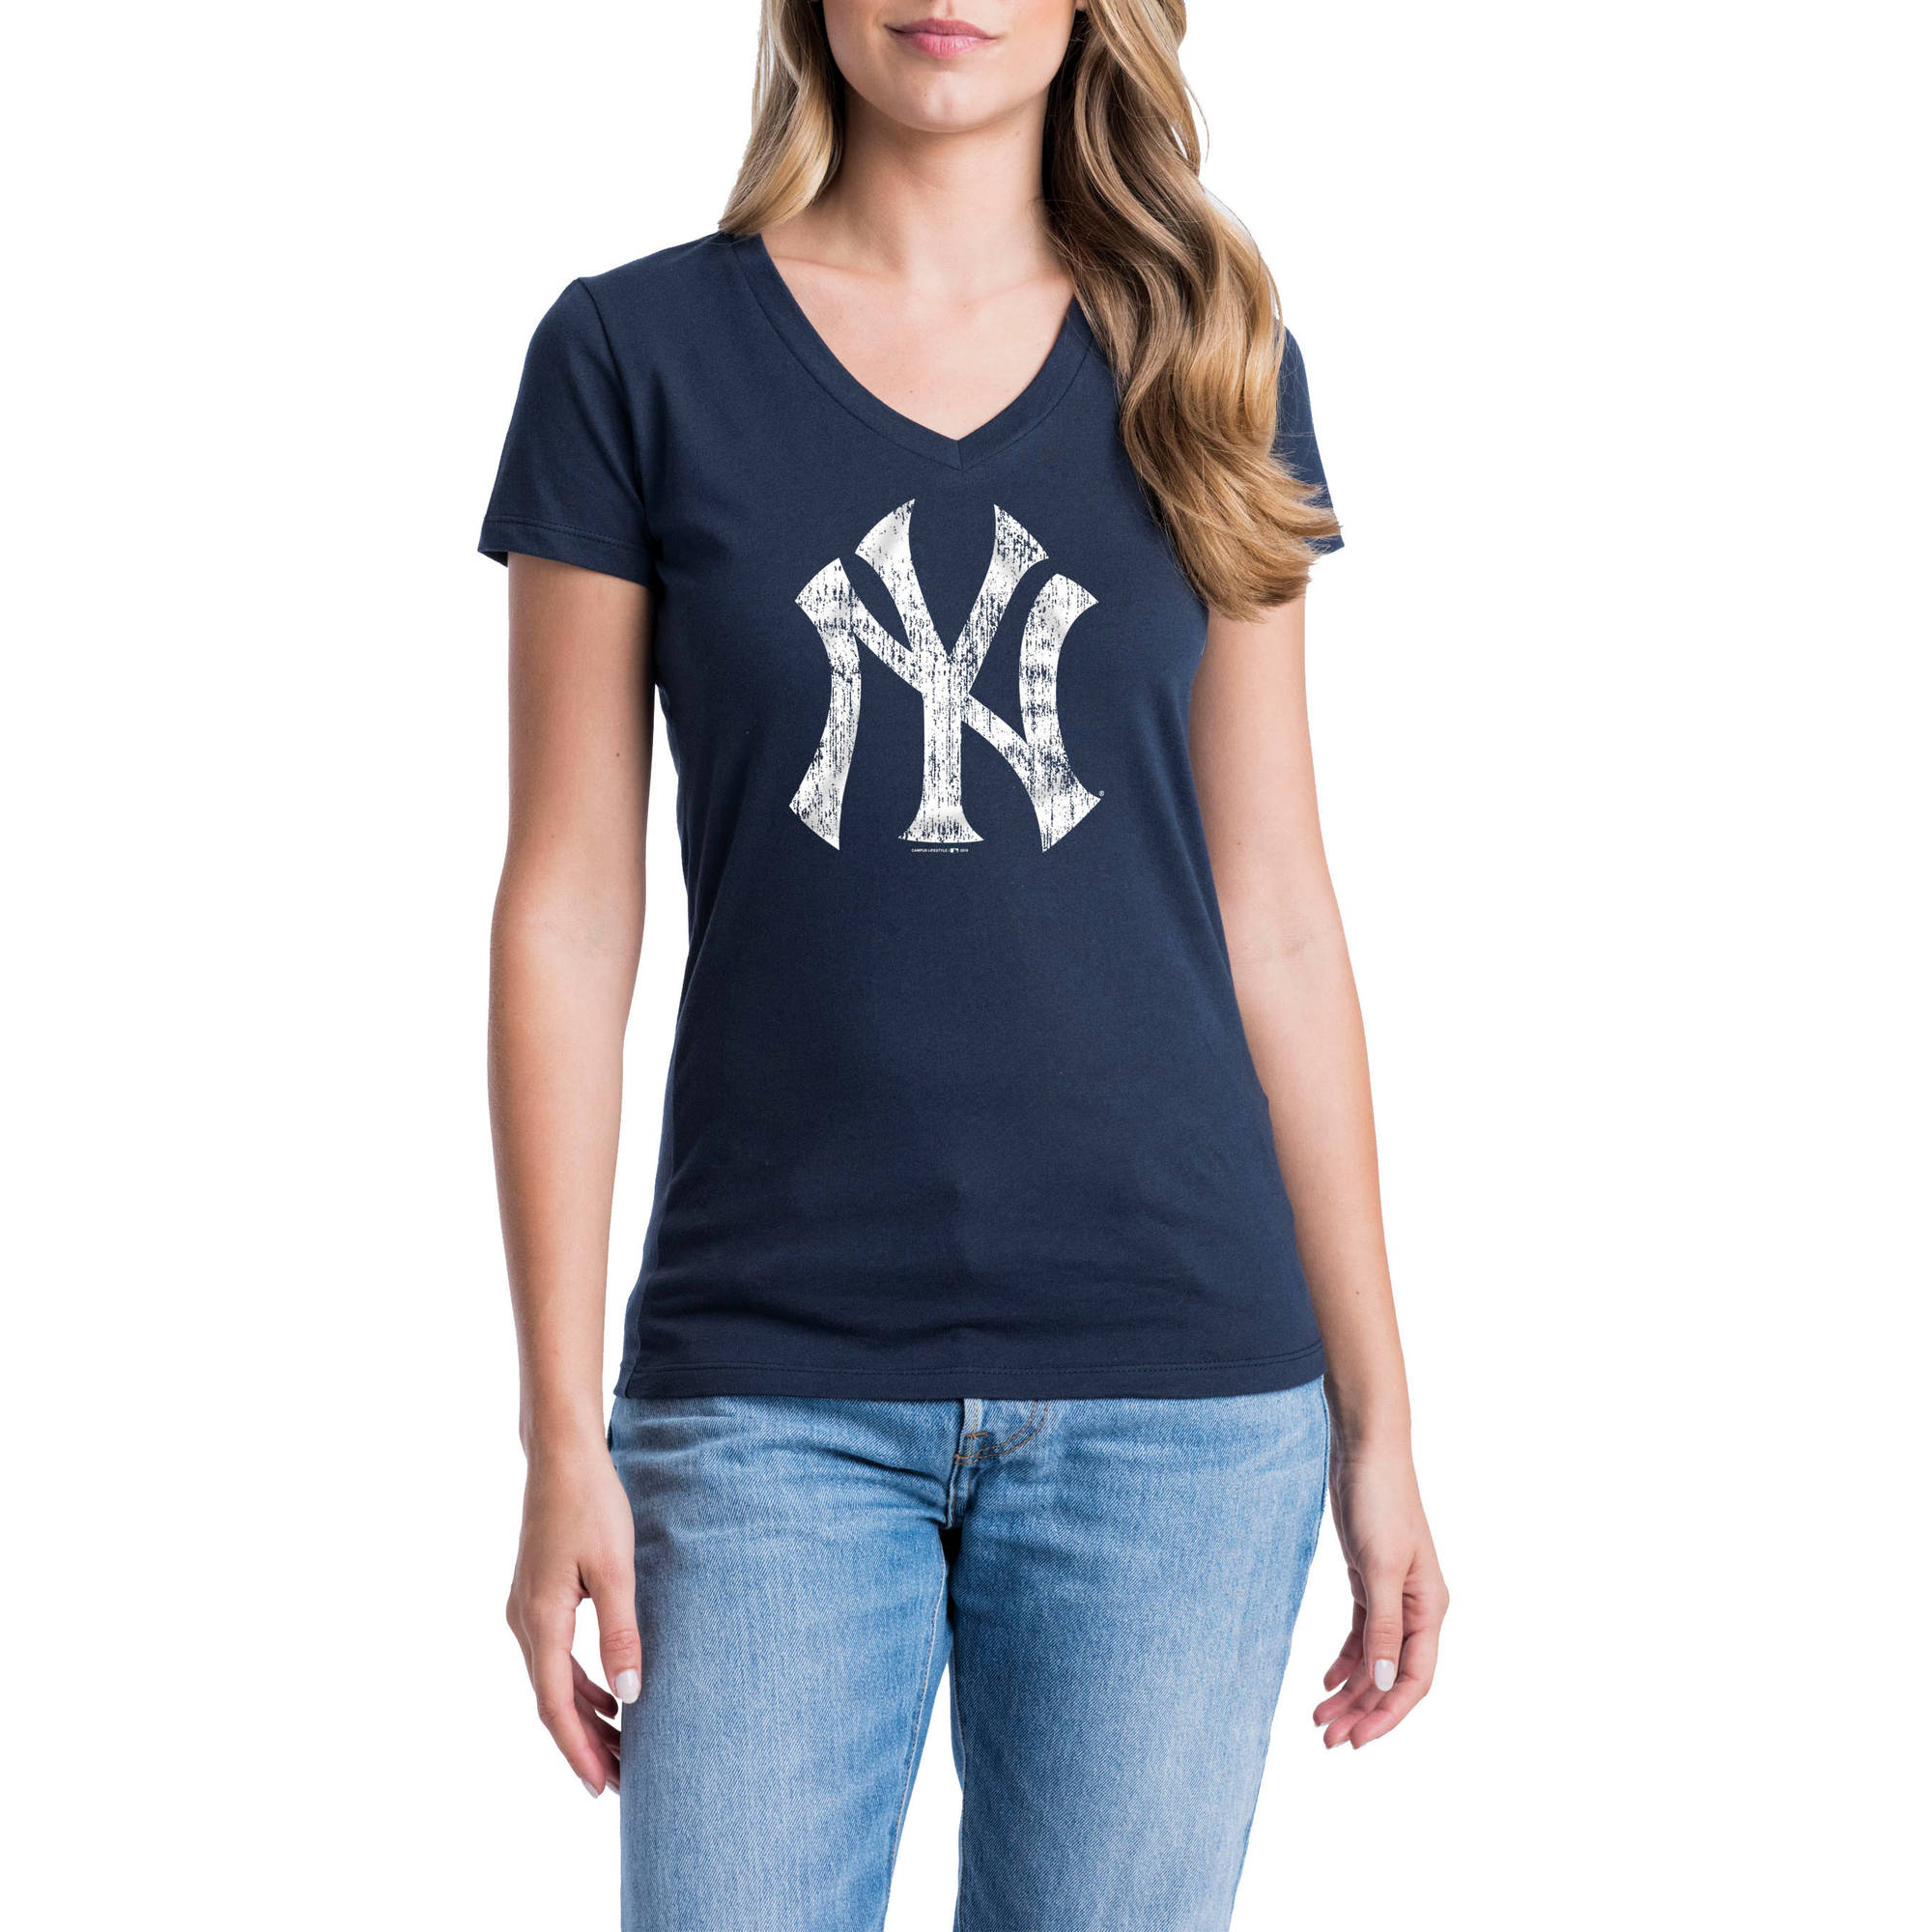 New York Yankees Womens Short Sleeve Graphic Tee